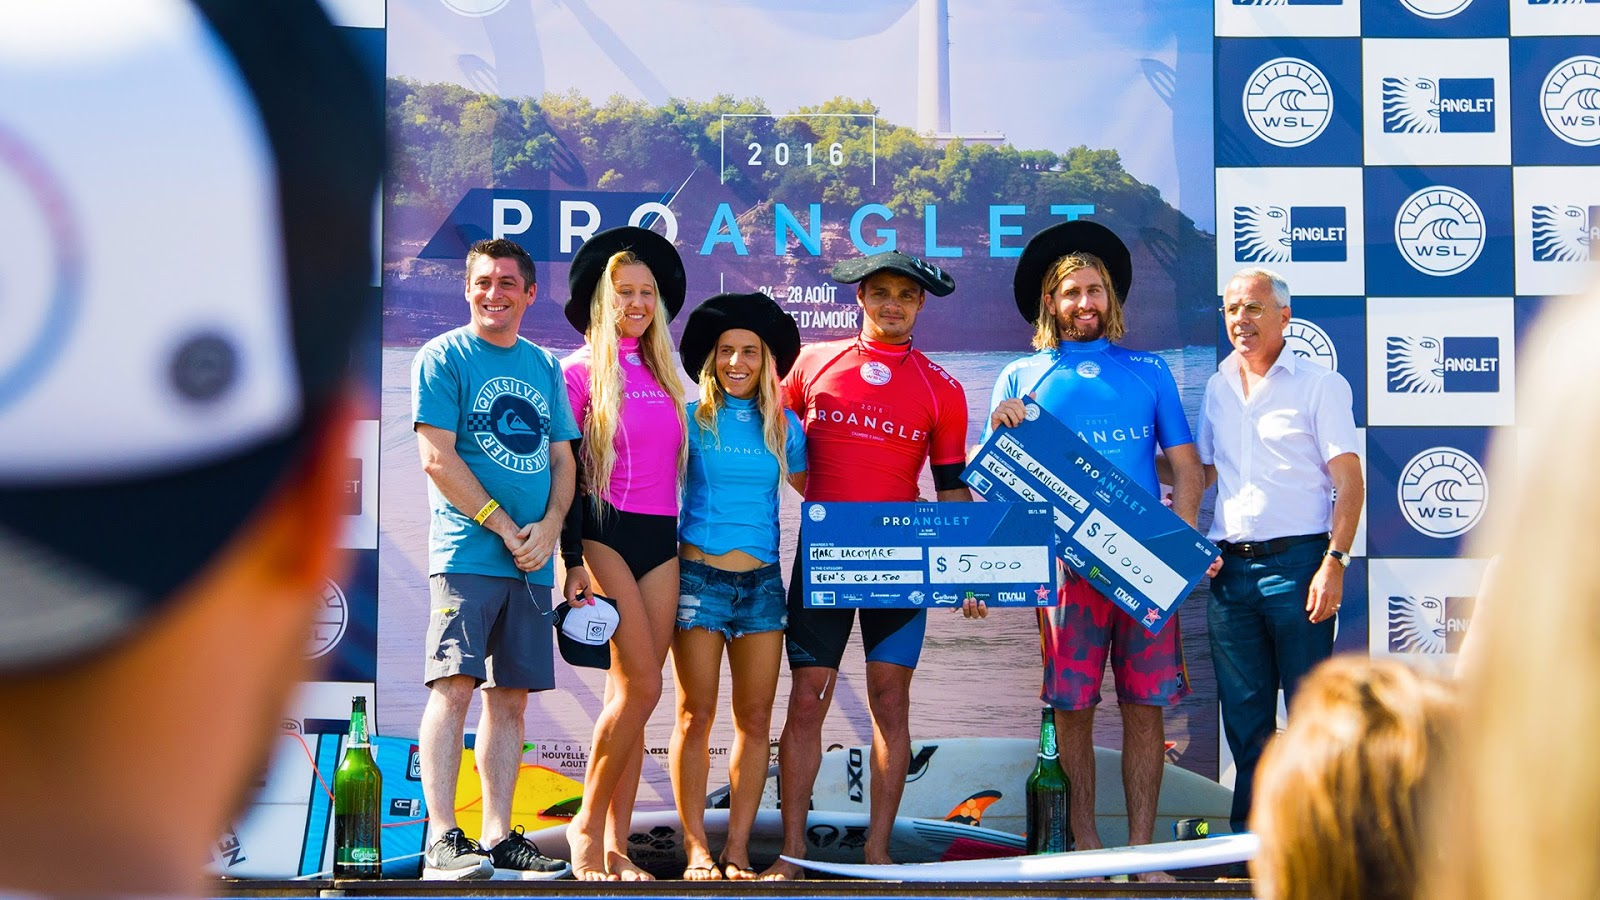 2016 Pro Anglet Highlights Australians Take Out Second Edition of Pro Anglet